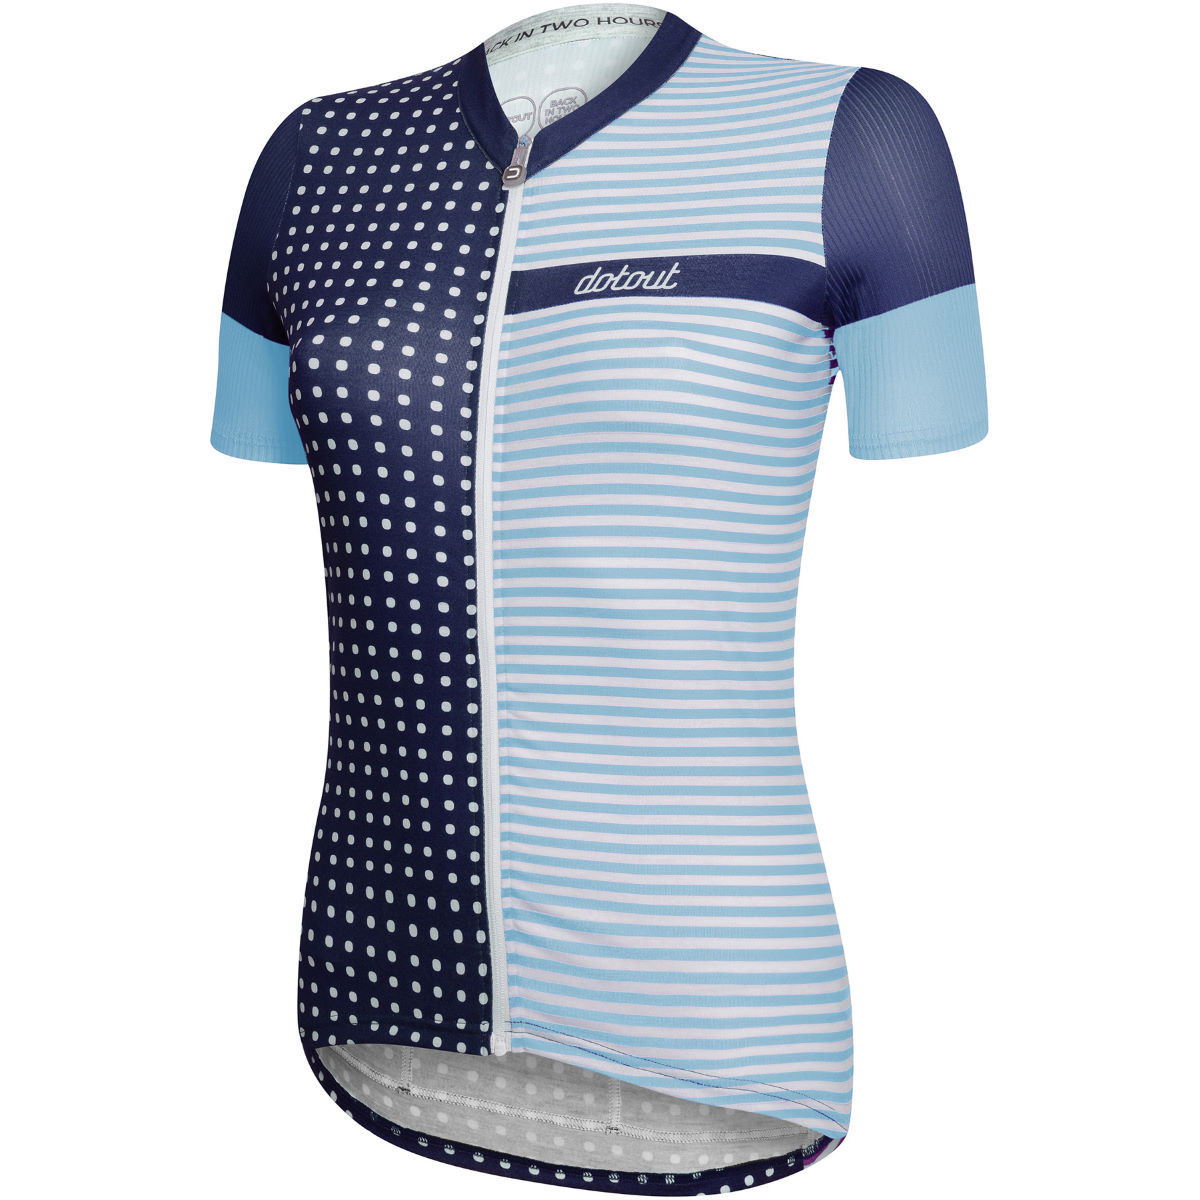 Dotout Women's Up Jersey - M Blue/Turquoise